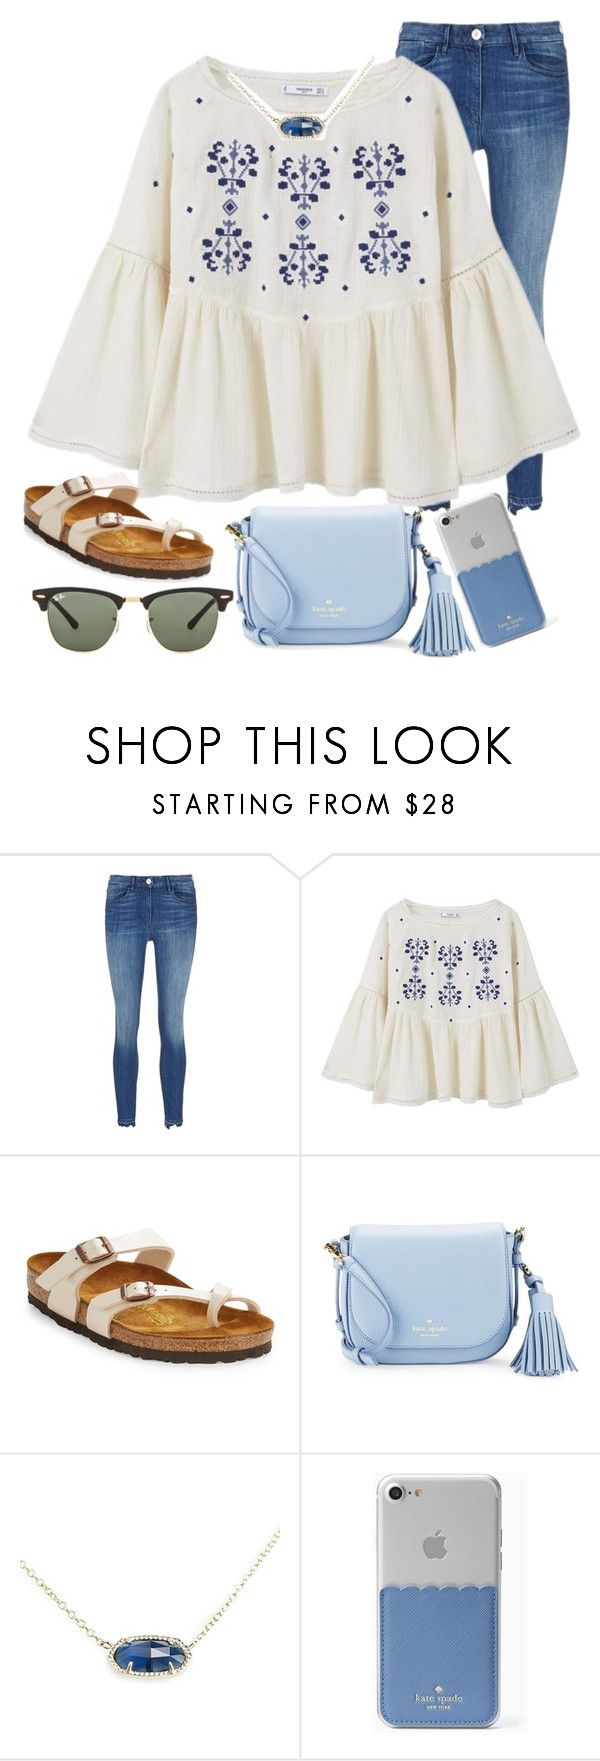 """blues"" by ashton7276 ❤ liked on Polyvore featuring 3x1, MANGO, Birkenstock, Kate Spade, Kendra Scott and Ray-Ban"